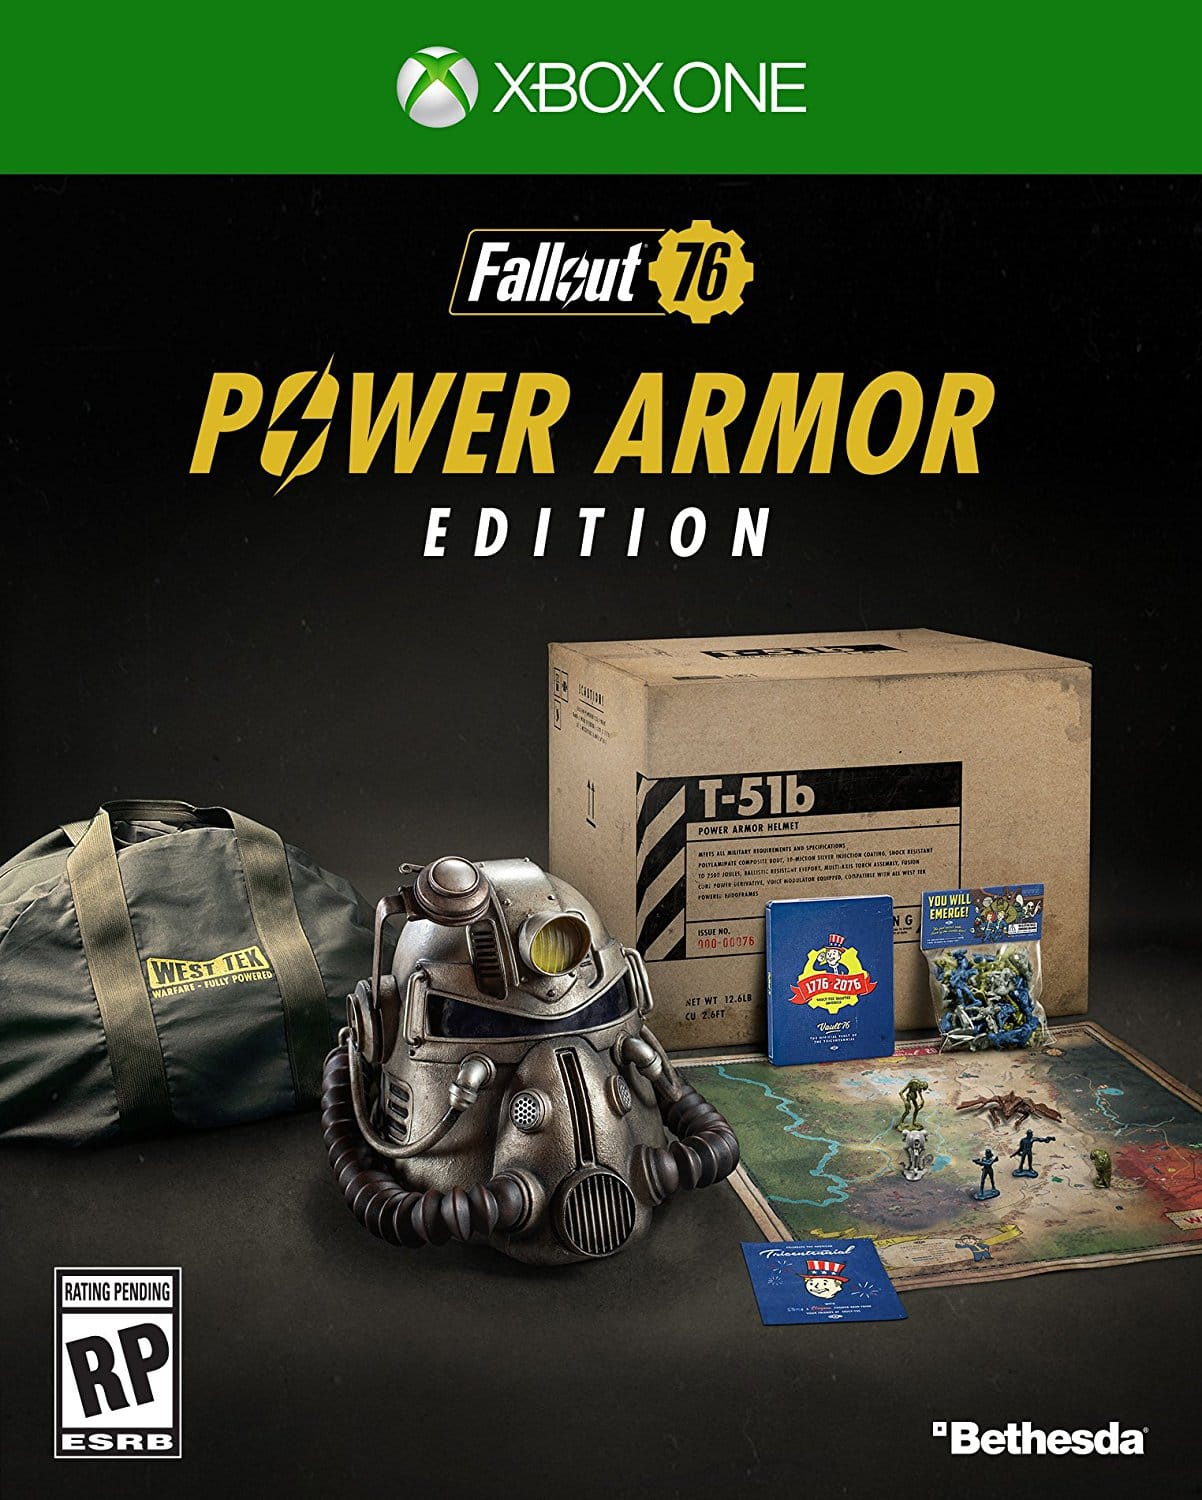 Fallout 76 Power Armor Edition Pre-Order -  PC, PS4, and Xbox All Available @ Amazon Right Now $199.99